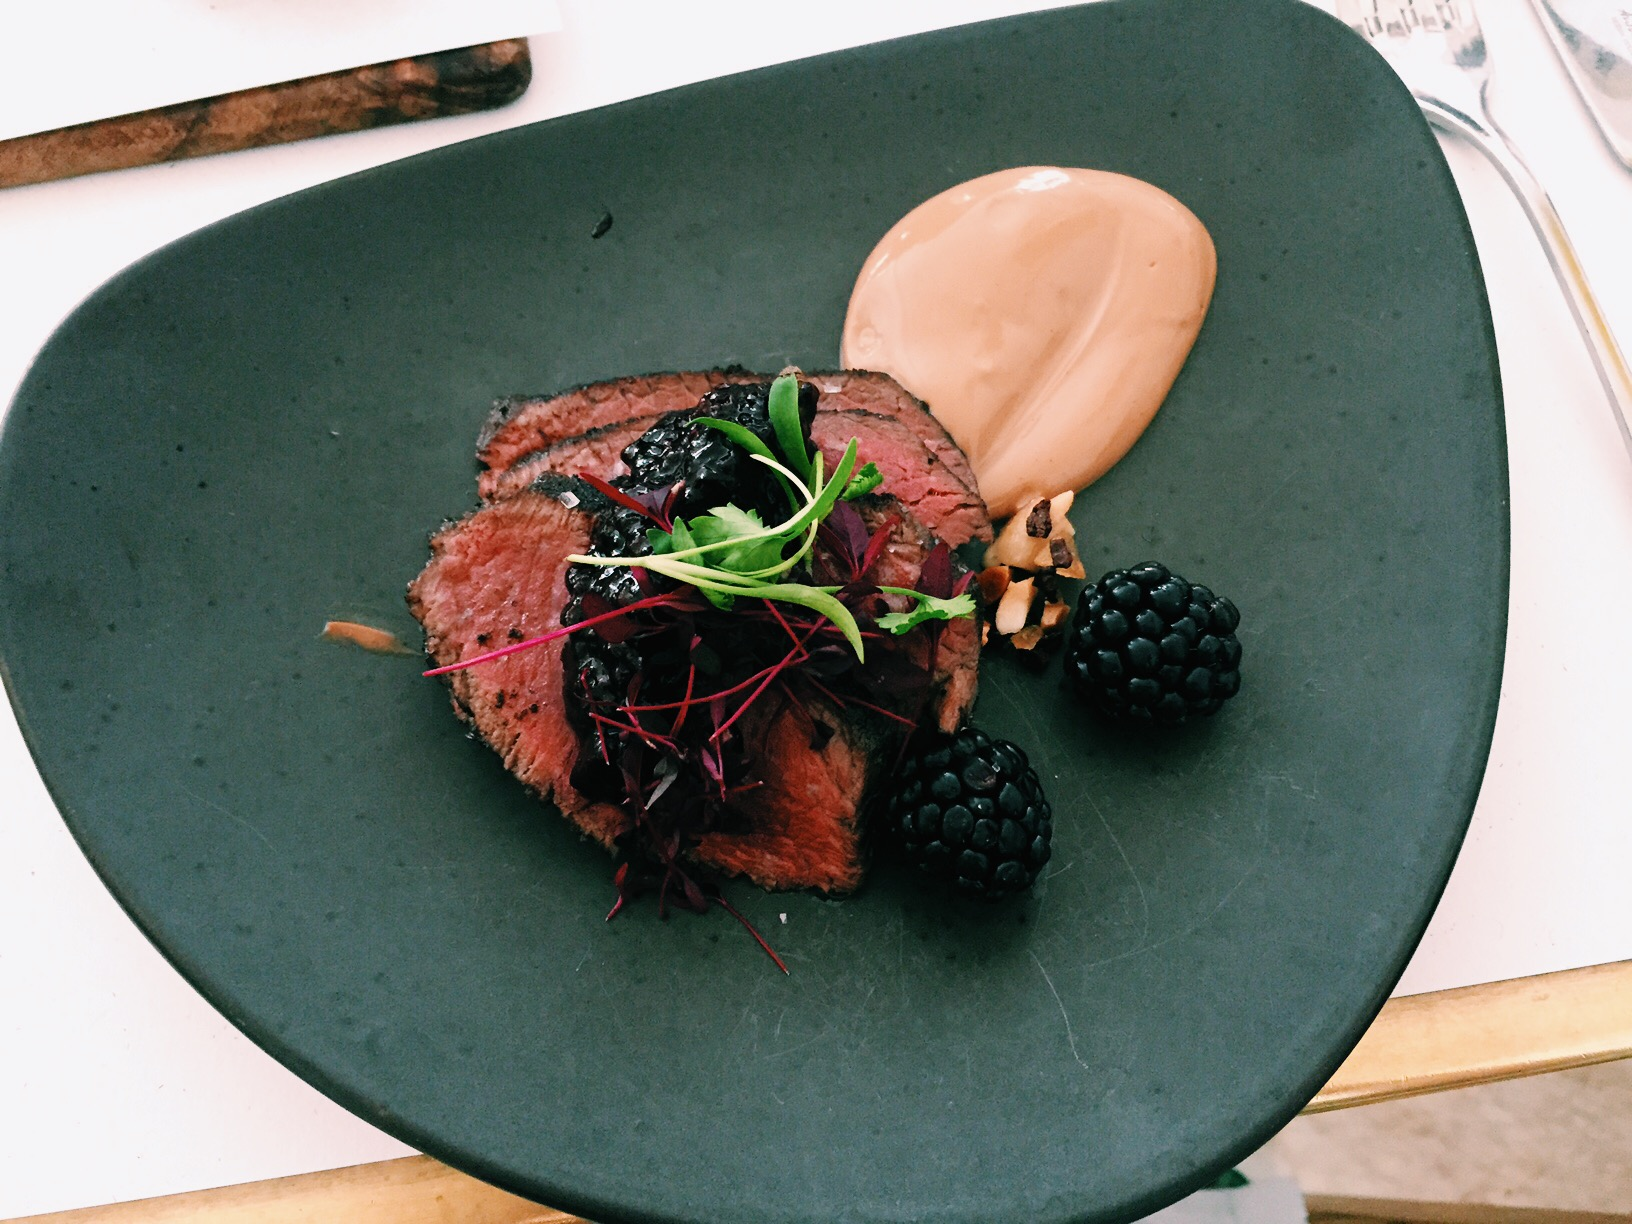 Onglet with blackberry compote and crème fraiche